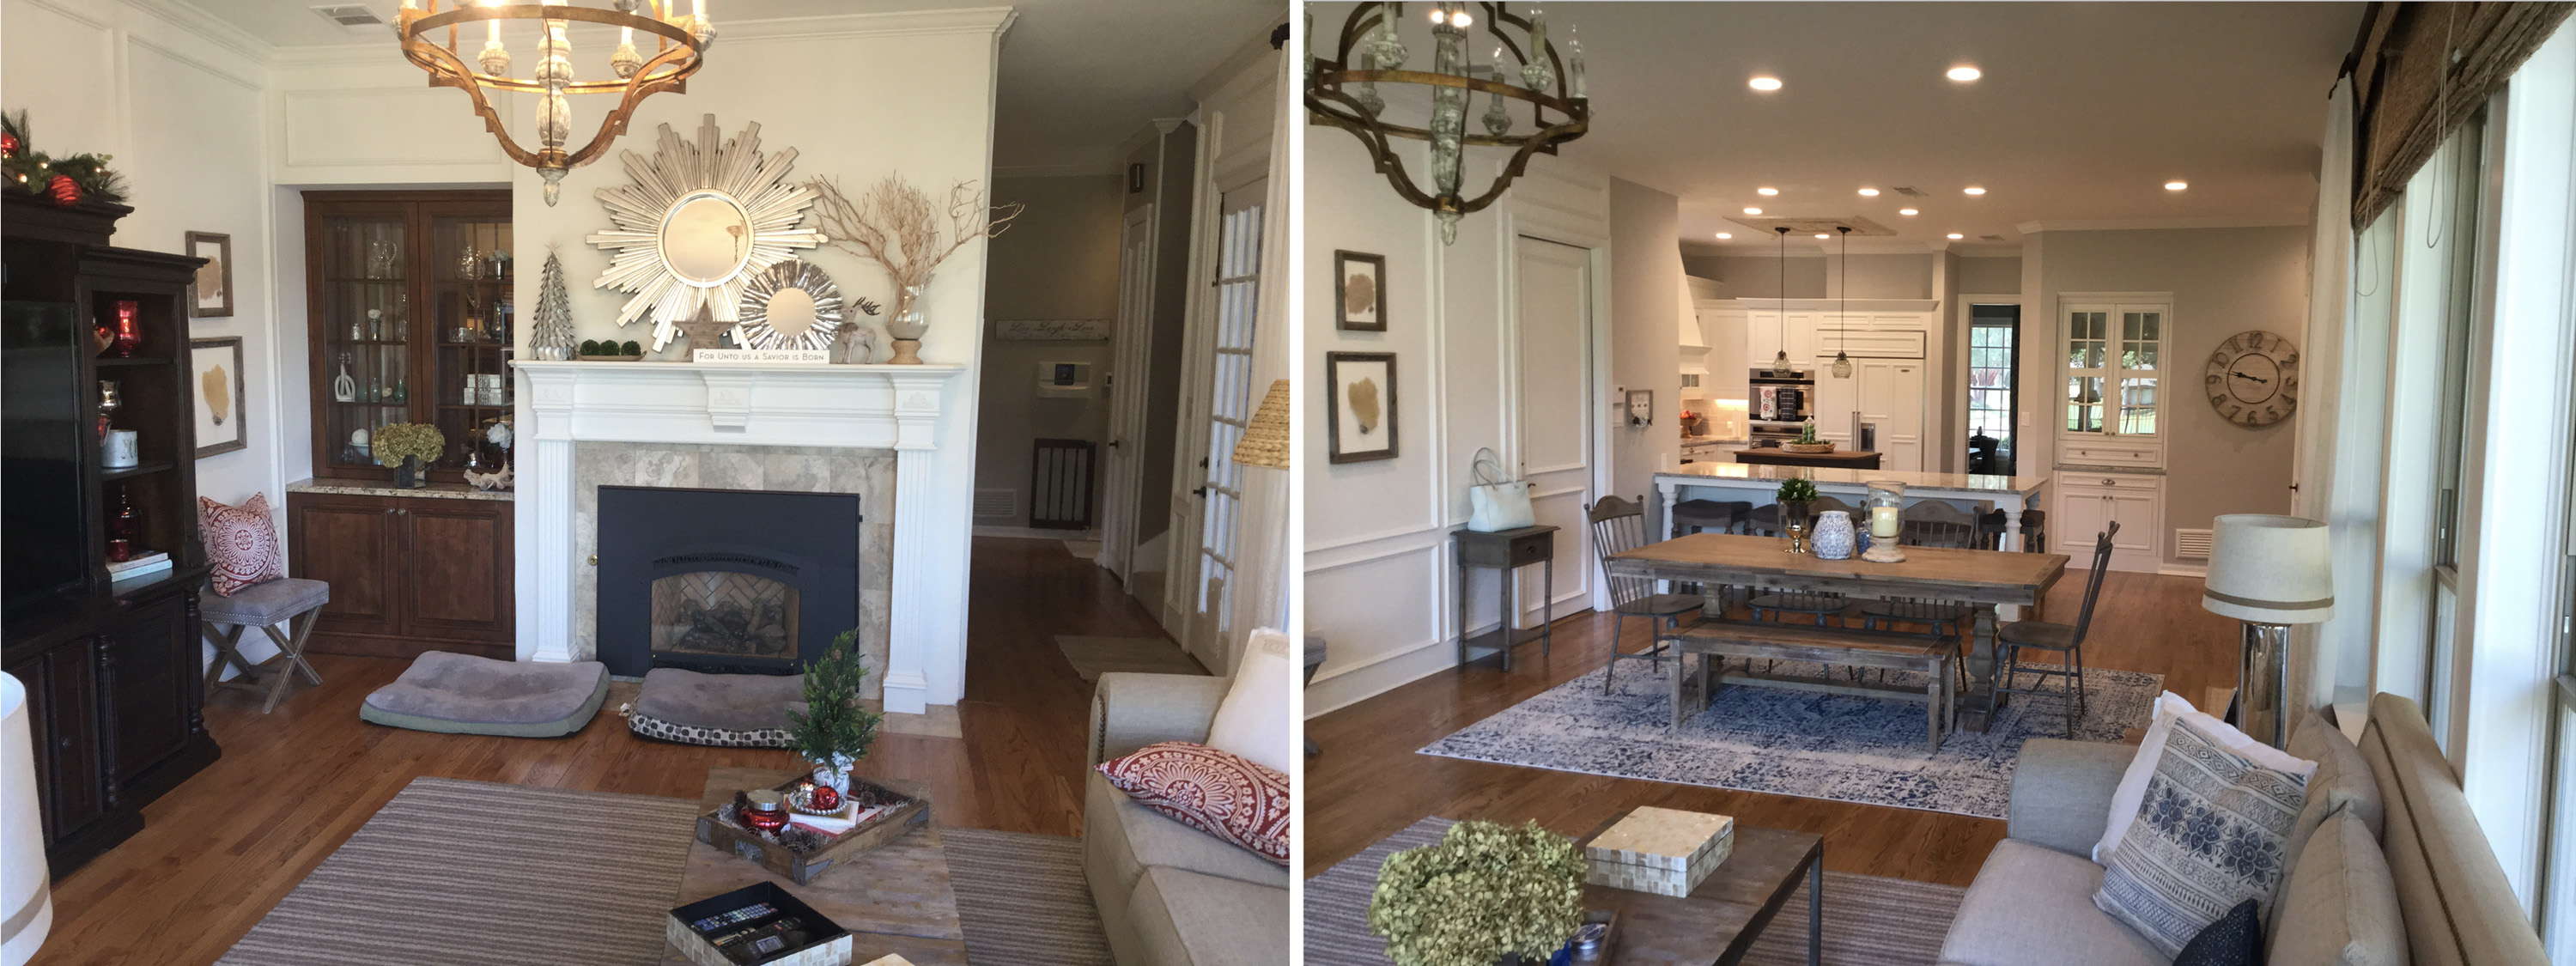 Family room facing kitchen b&a